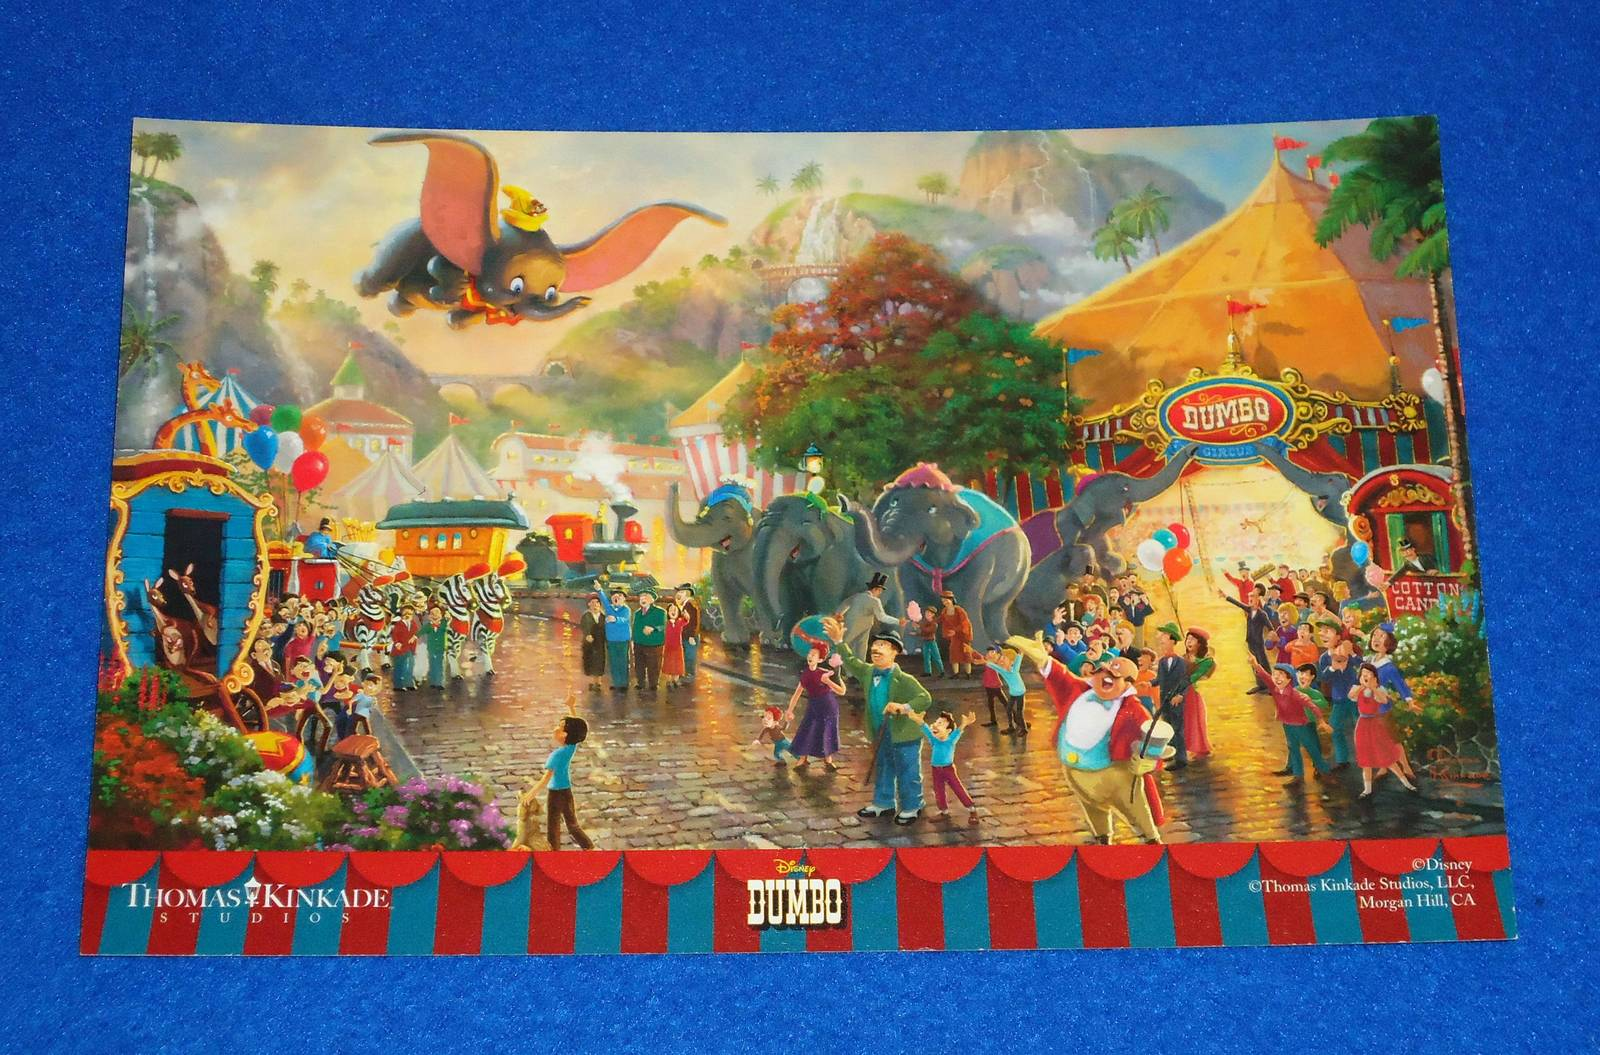 Thomas kincade dumbo picture card 1